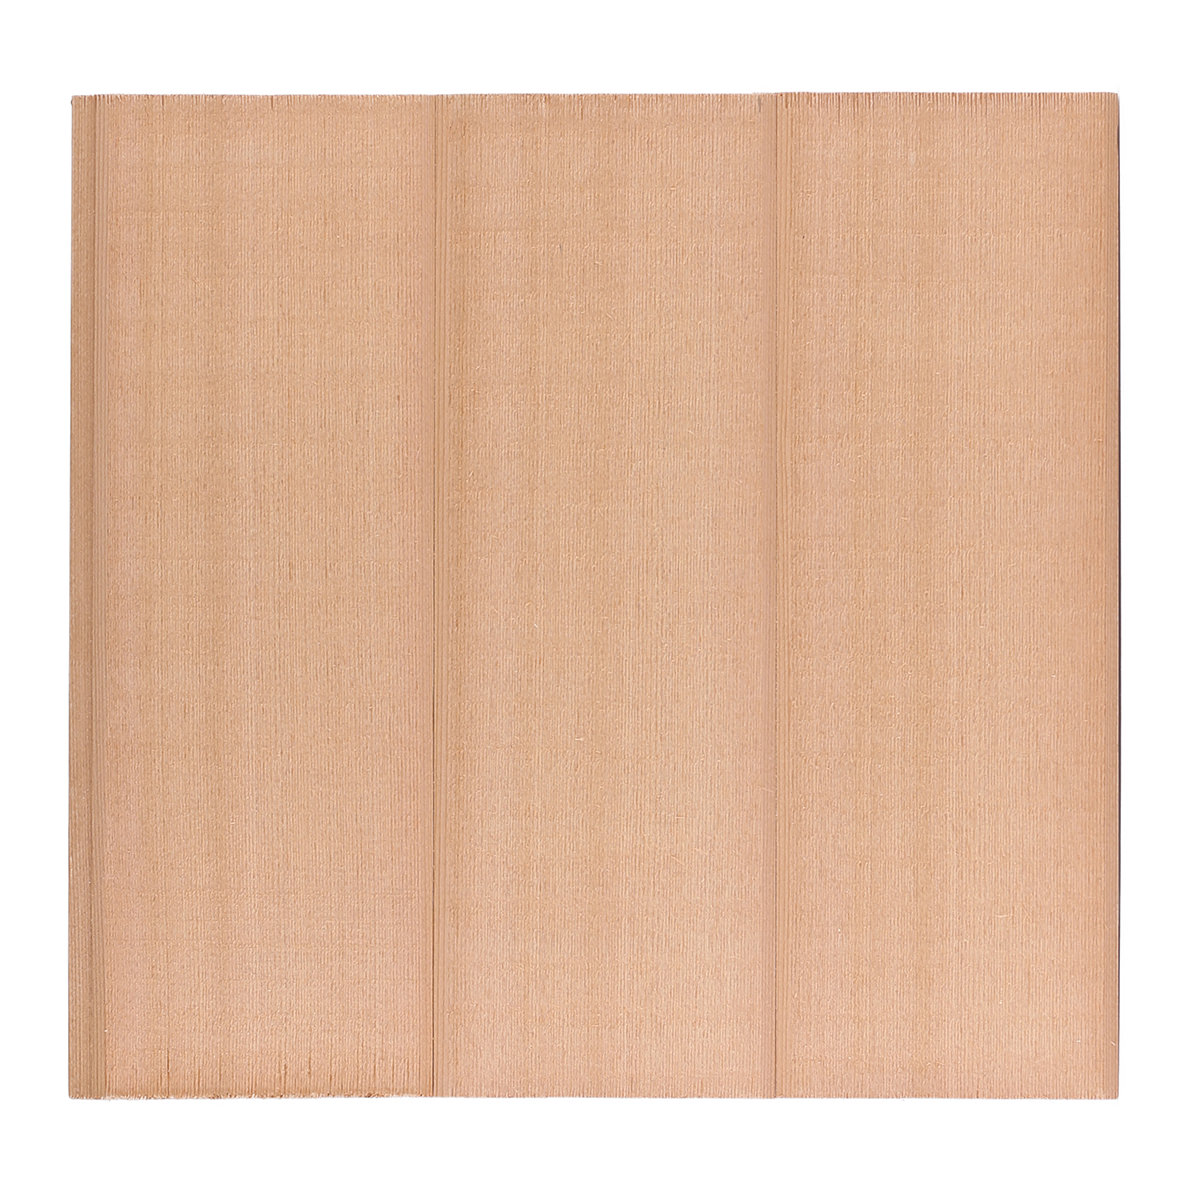 11 16 Quot X 5 Quot Face Clear Western Red Cedar Tongue Amp Groove